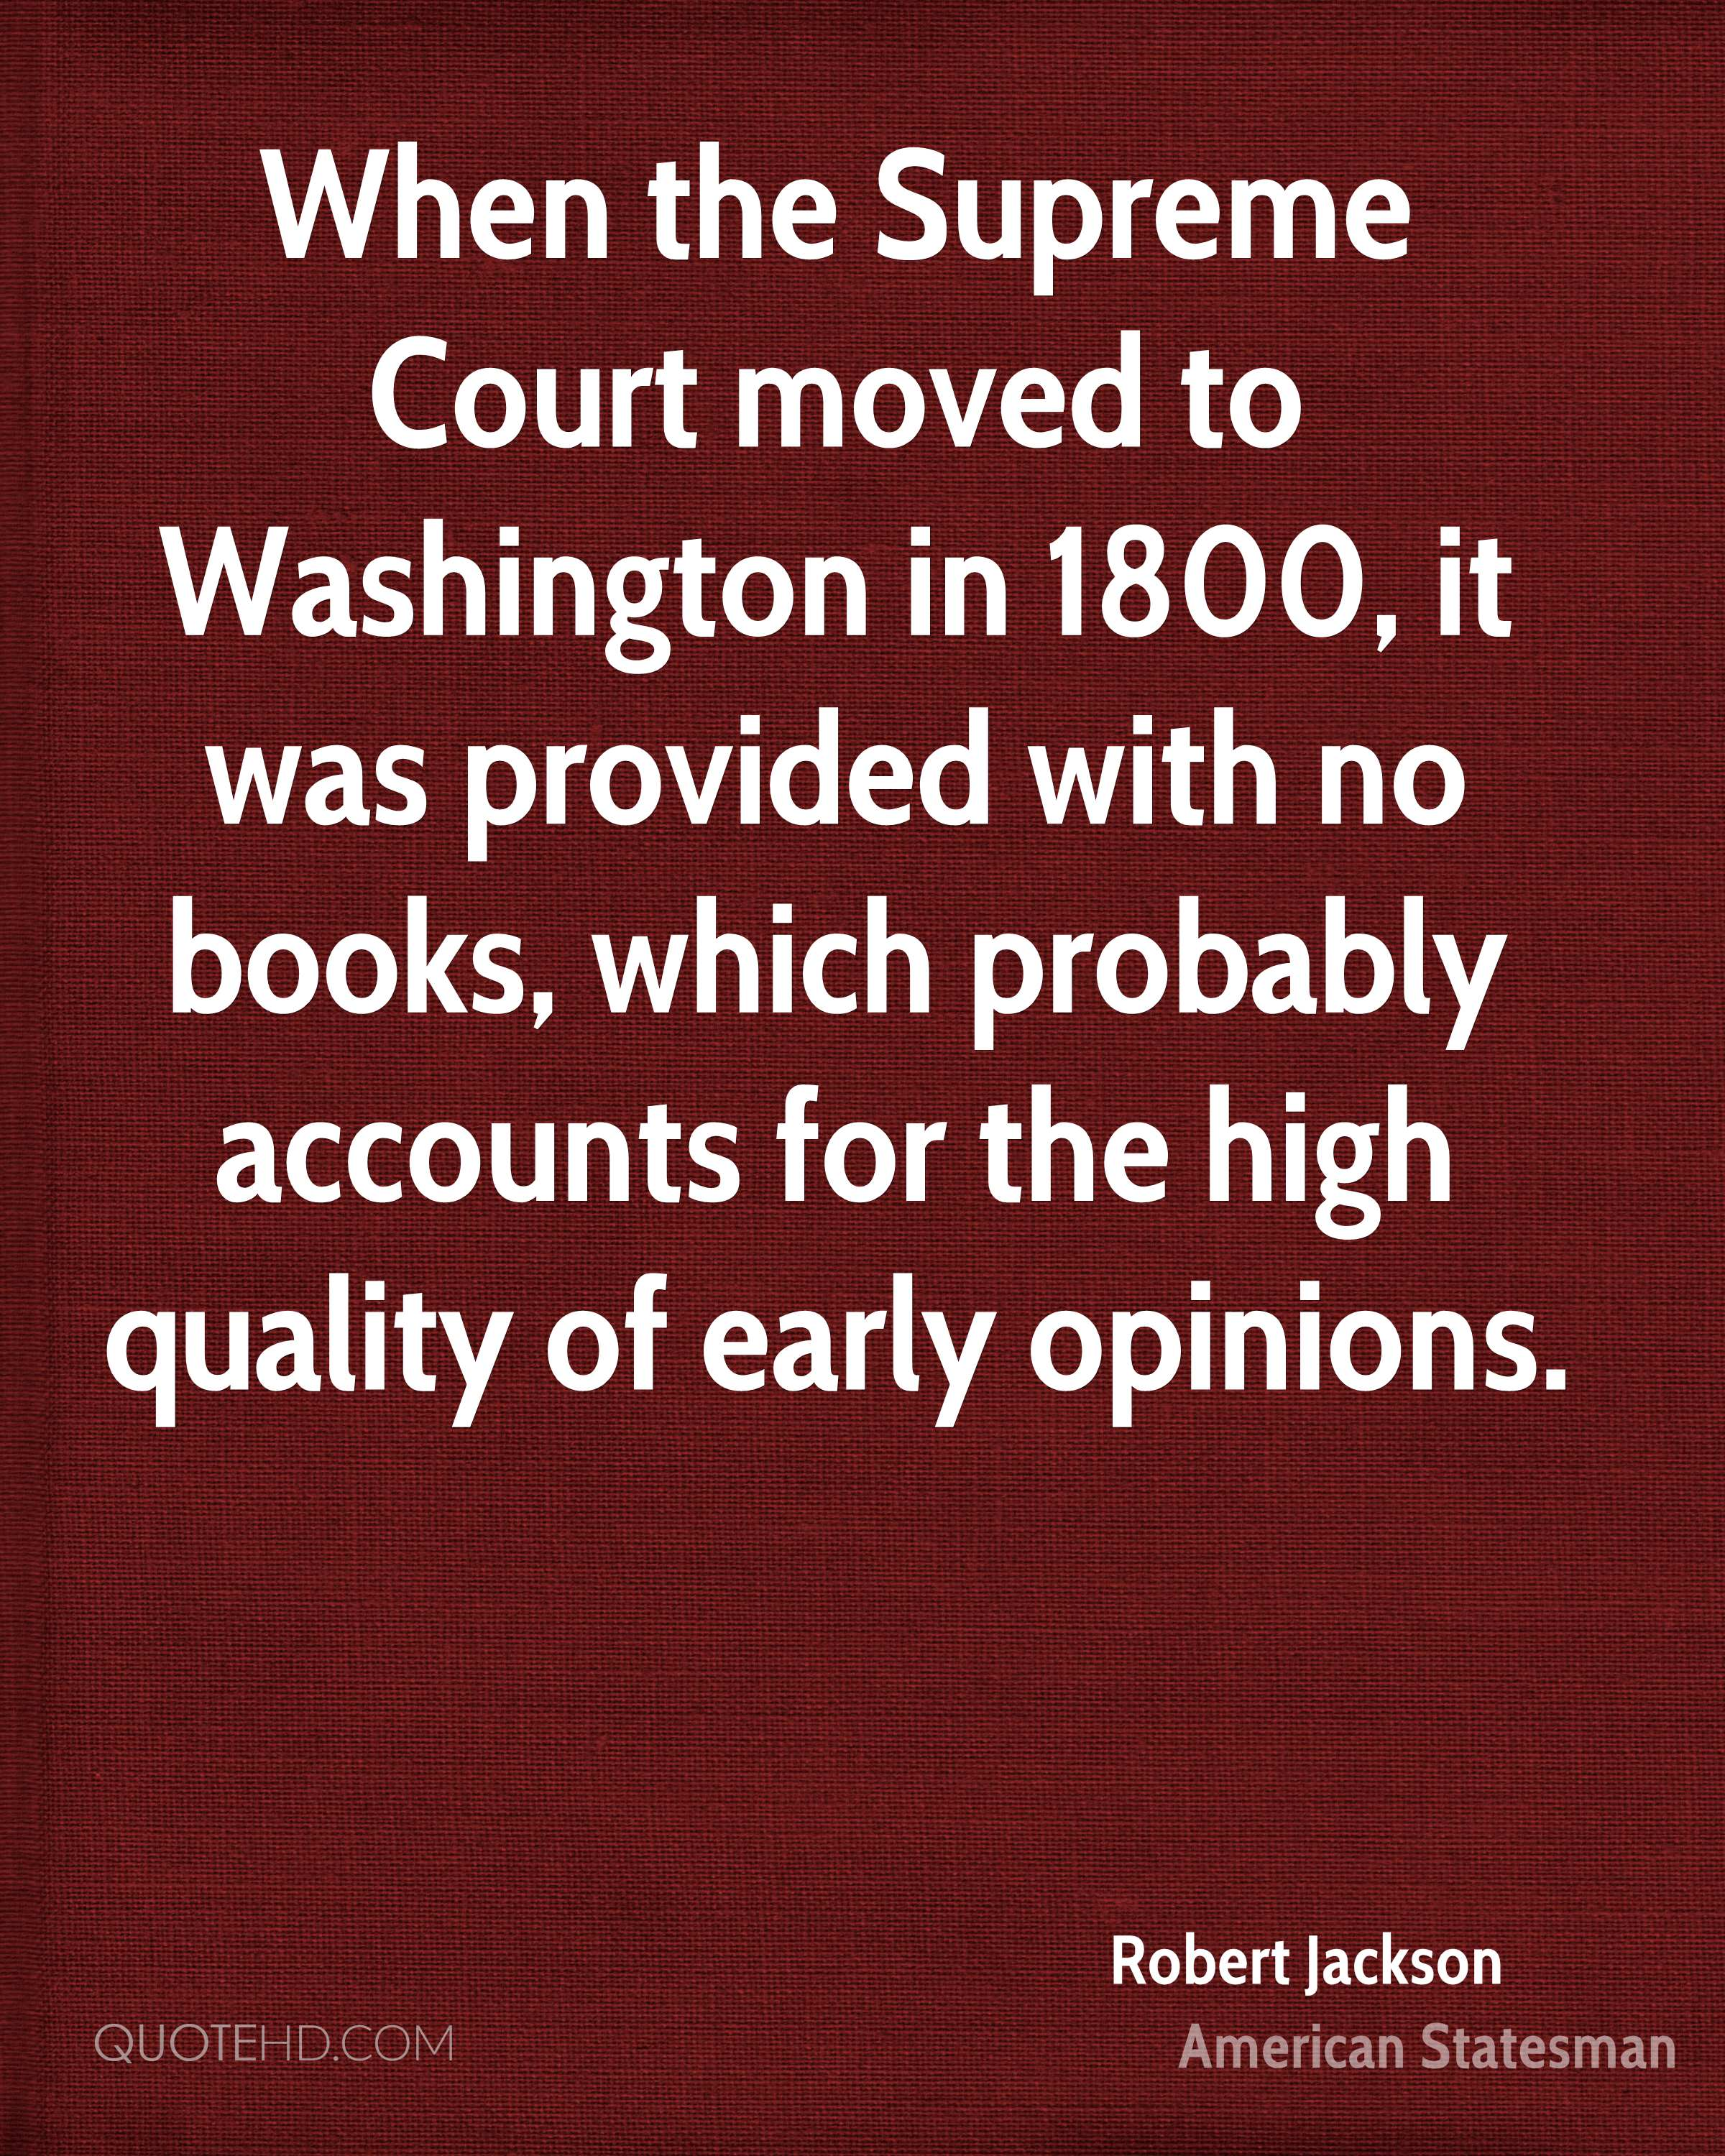 When the Supreme Court moved to Washington in 1800, it was provided with no books, which probably accounts for the high quality of early opinions.